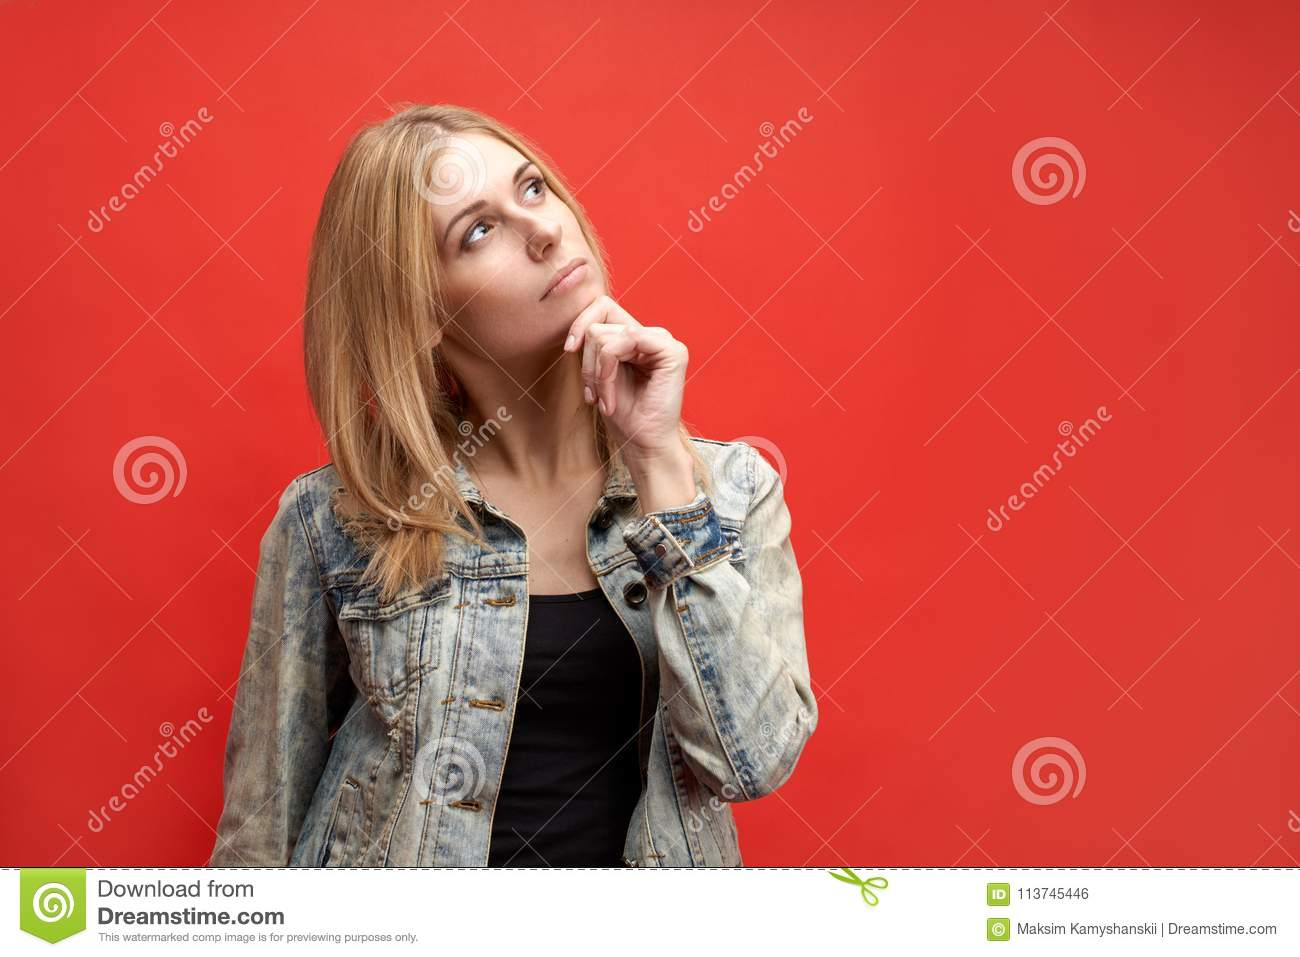 Stylish attractive slender young blonde student woman thoughtfully holds her chin and looks up with a pensive expression.